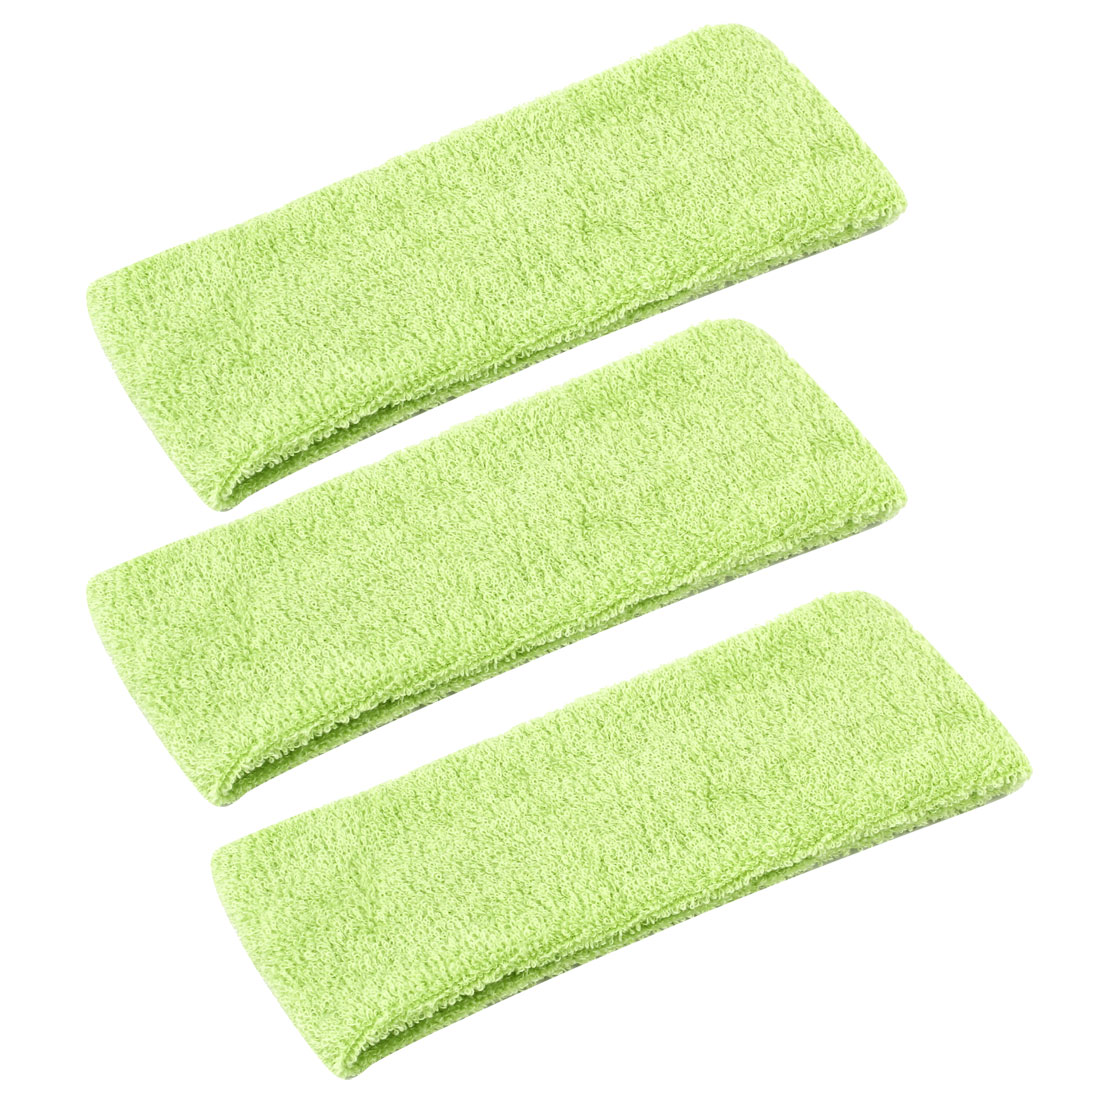 "Sports Terrycloth Soft Sweat Absorbent Protective 2.2"" Width Stretchy Headband Yellow Green 3 Pcs"